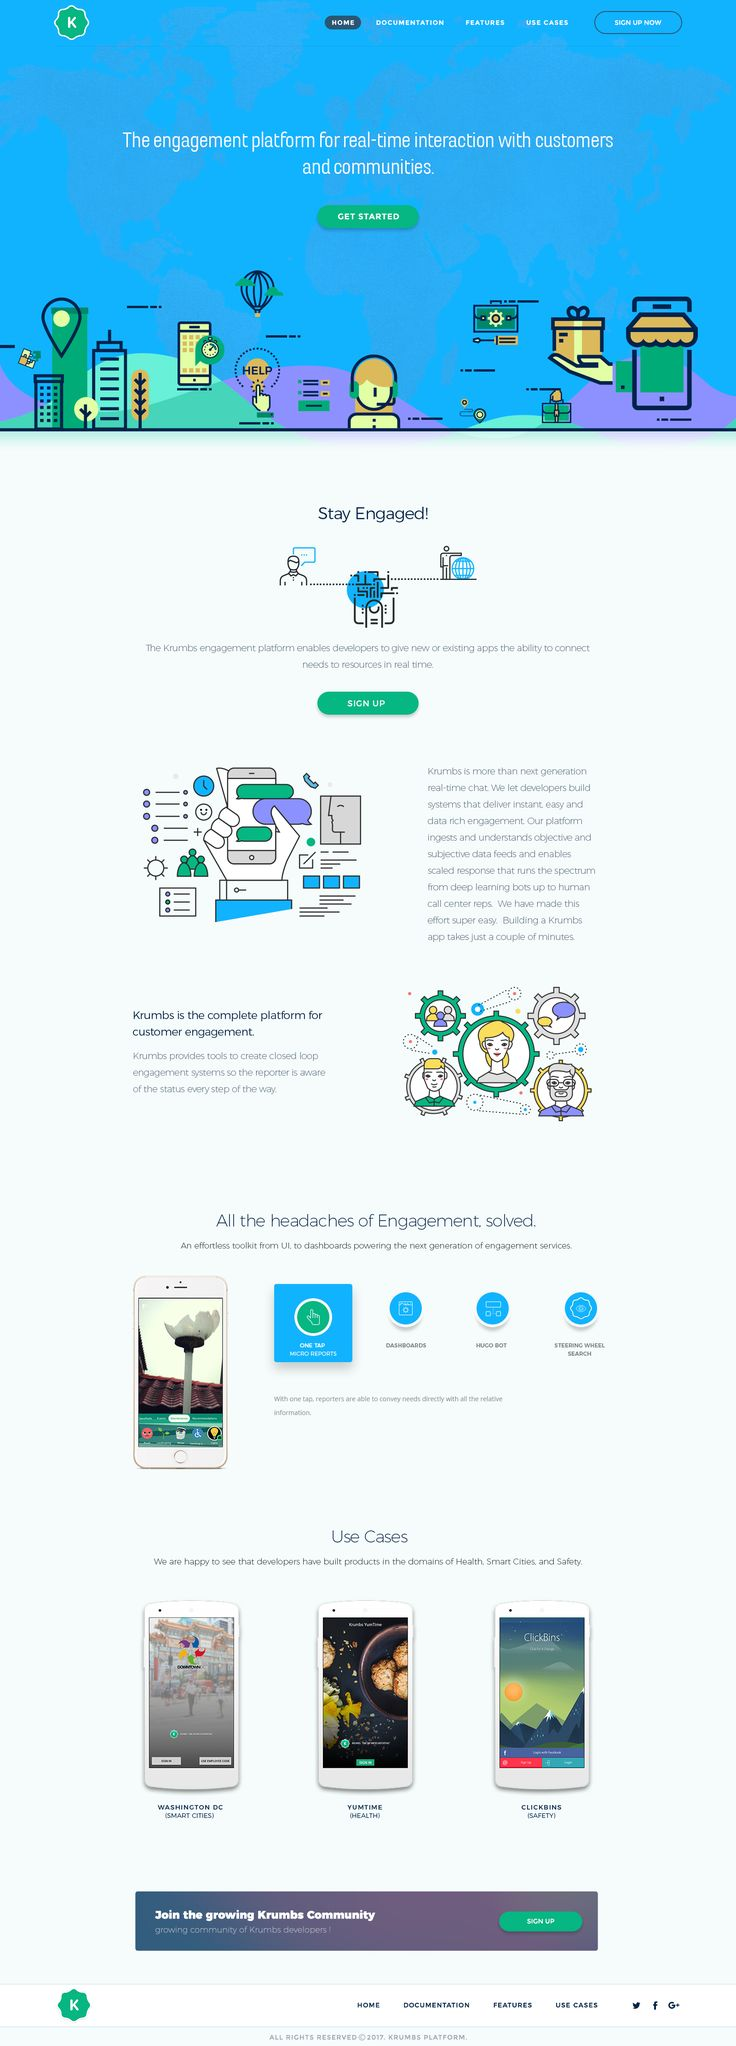 23 inspirational landing page design ideas. Colorful flat design characters by Sarah Studio bring to life this landing page for tech startup Krumbs #design #web #marketing